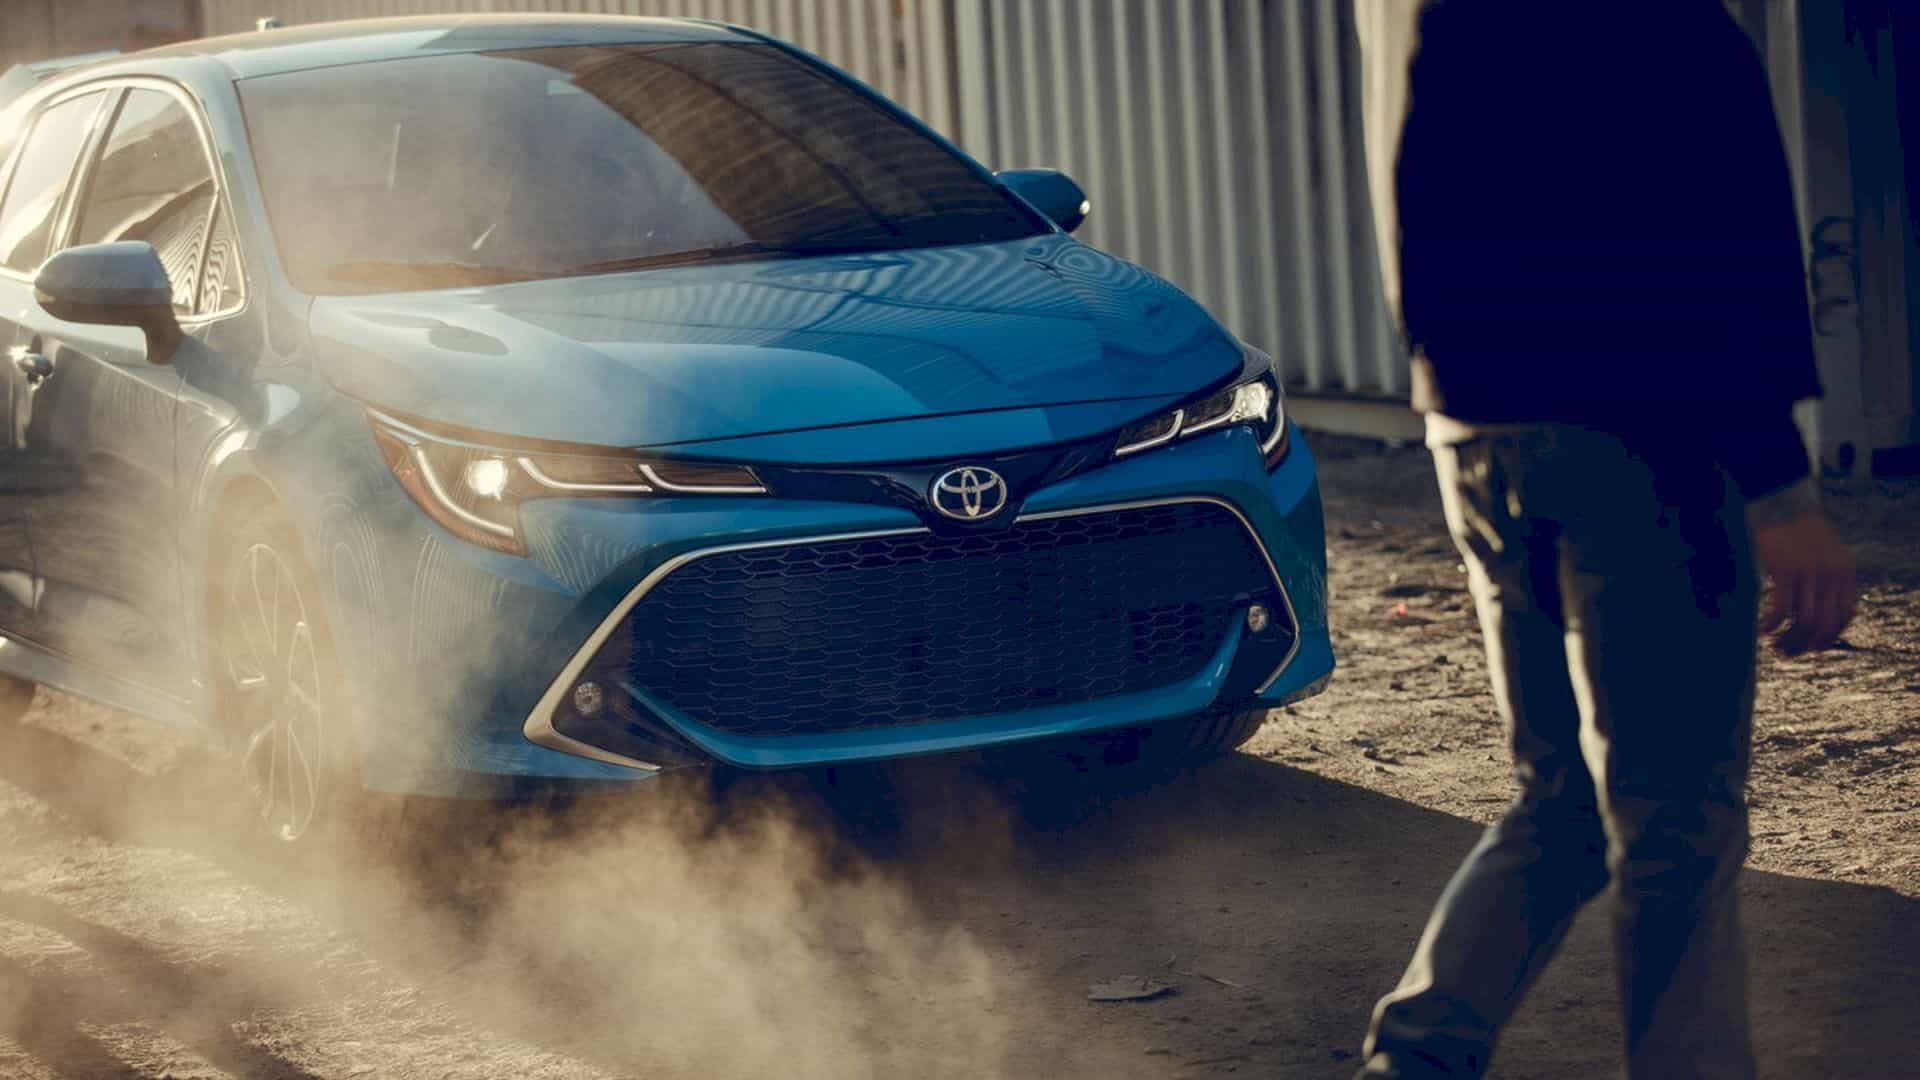 2019 Toyota Corolla Hatchback: The Legend Came Back with New Style